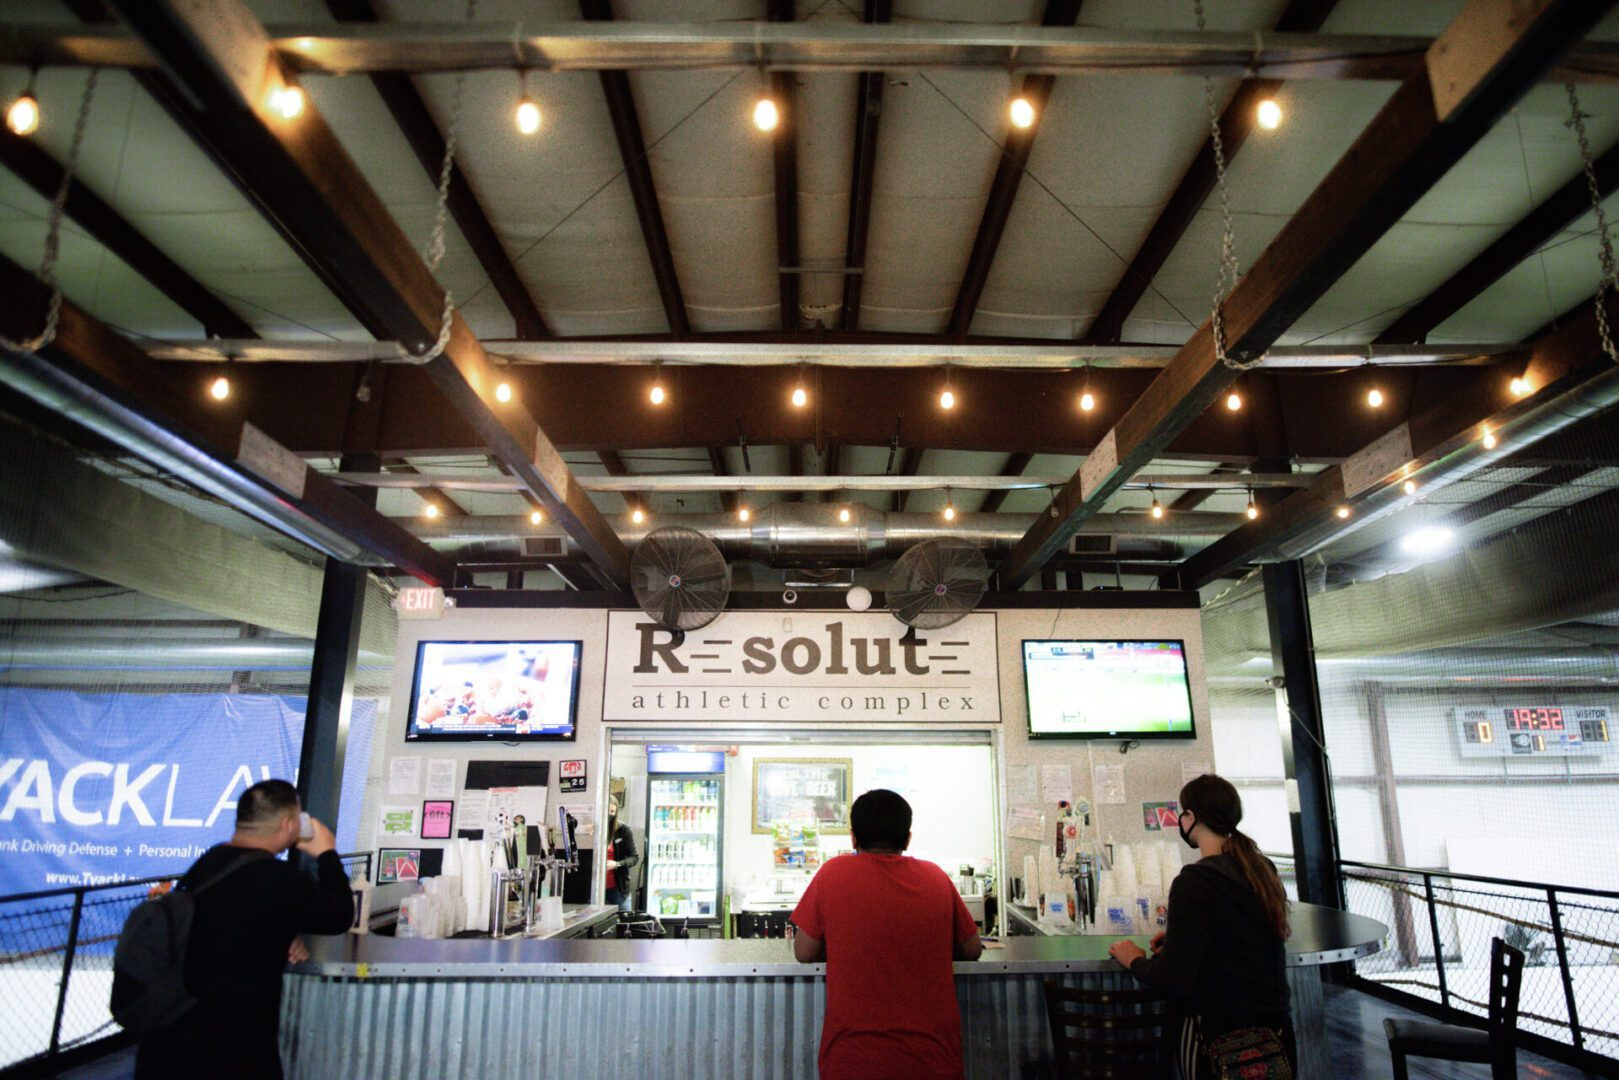 Resolute Athletic Complex